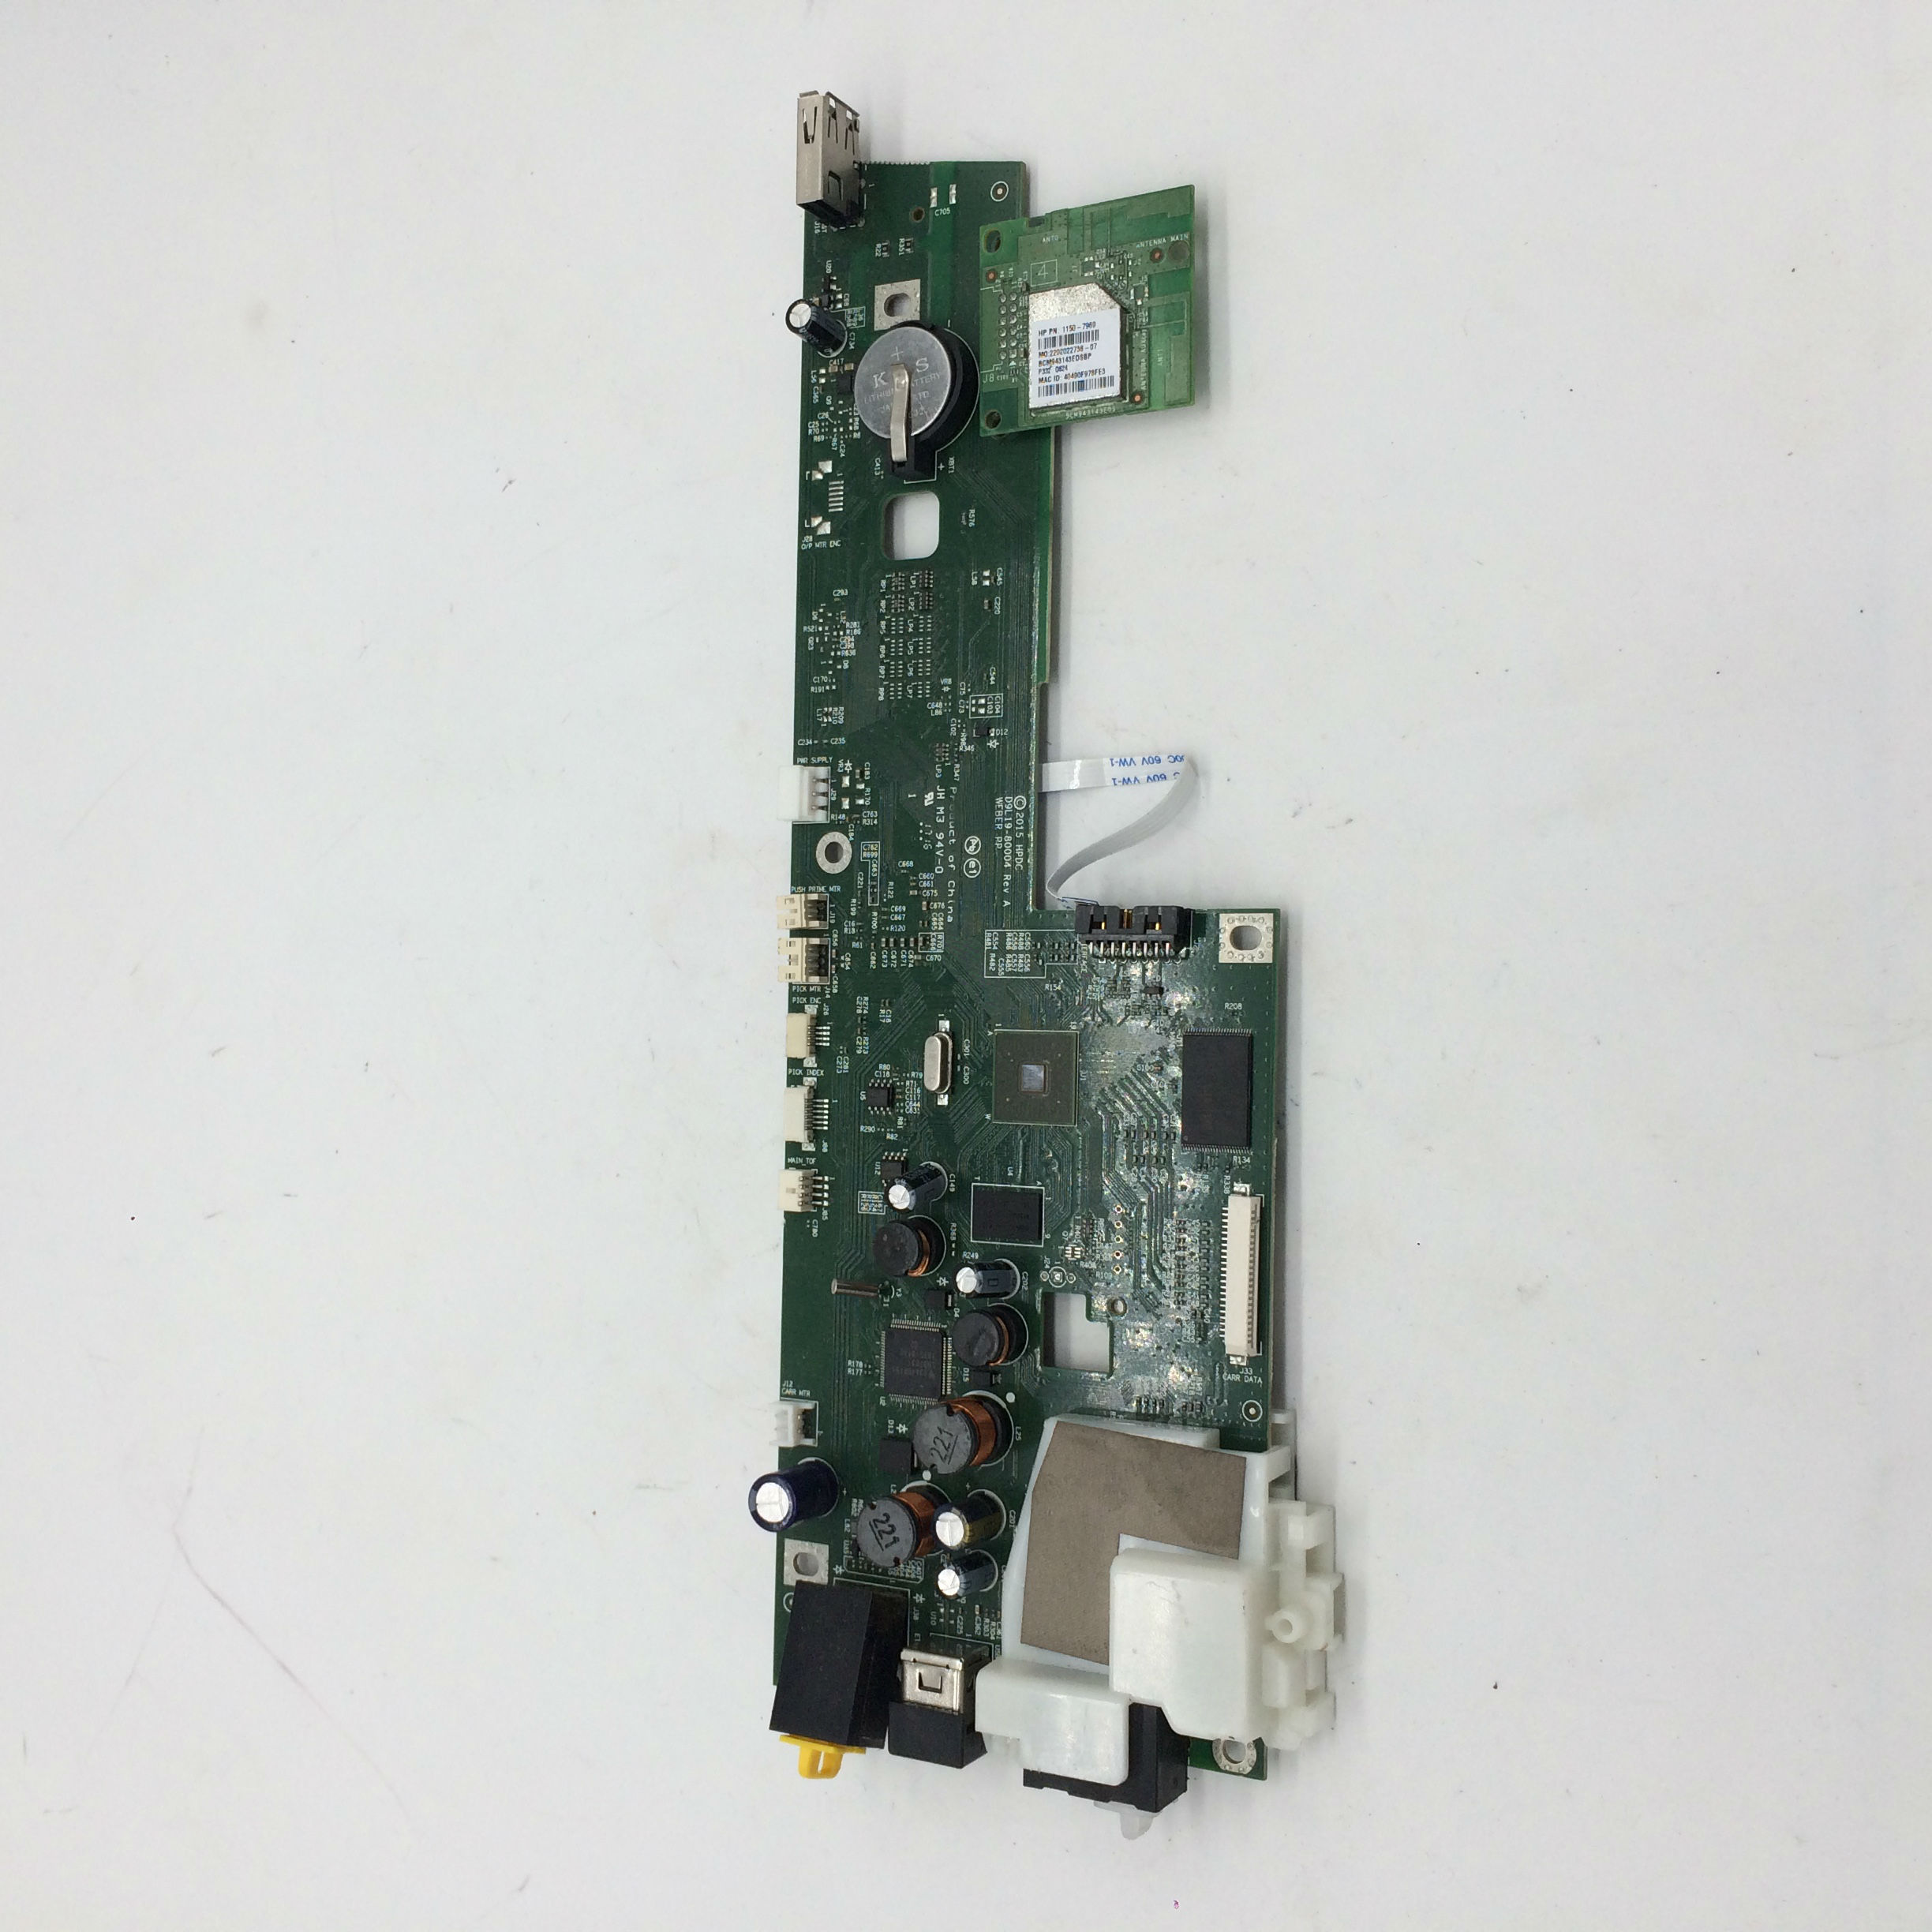 MainBoard MotherBoard P/N: D9L19-80004 for HP OfficeJet Pro 8720 printerMainBoard MotherBoard P/N: D9L19-80004 for HP OfficeJet Pro 8720 printer